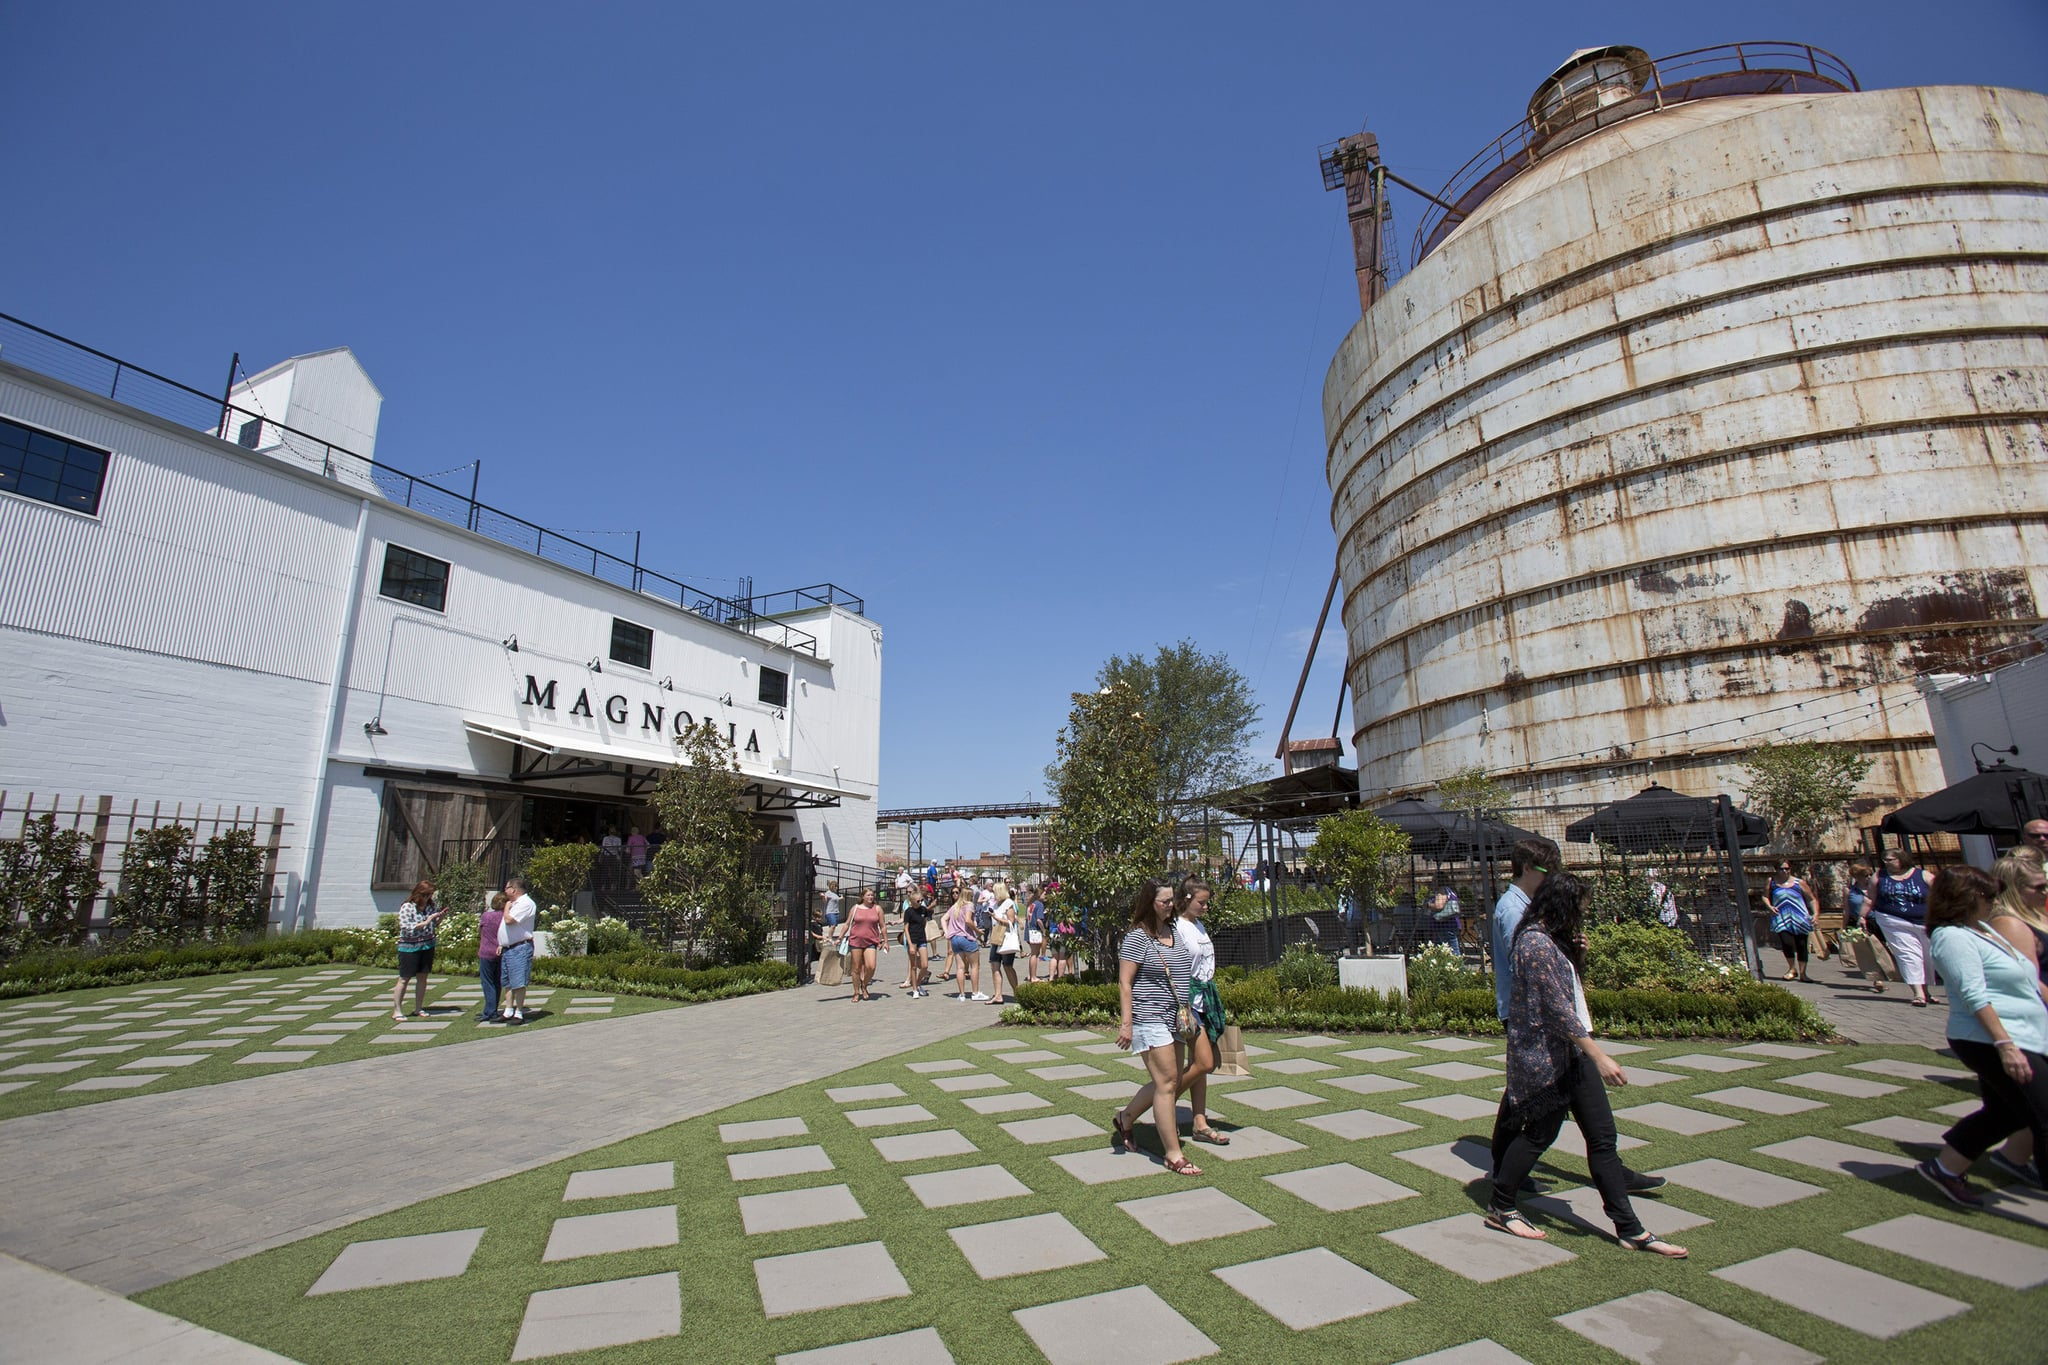 image source getty fort worth - Silos